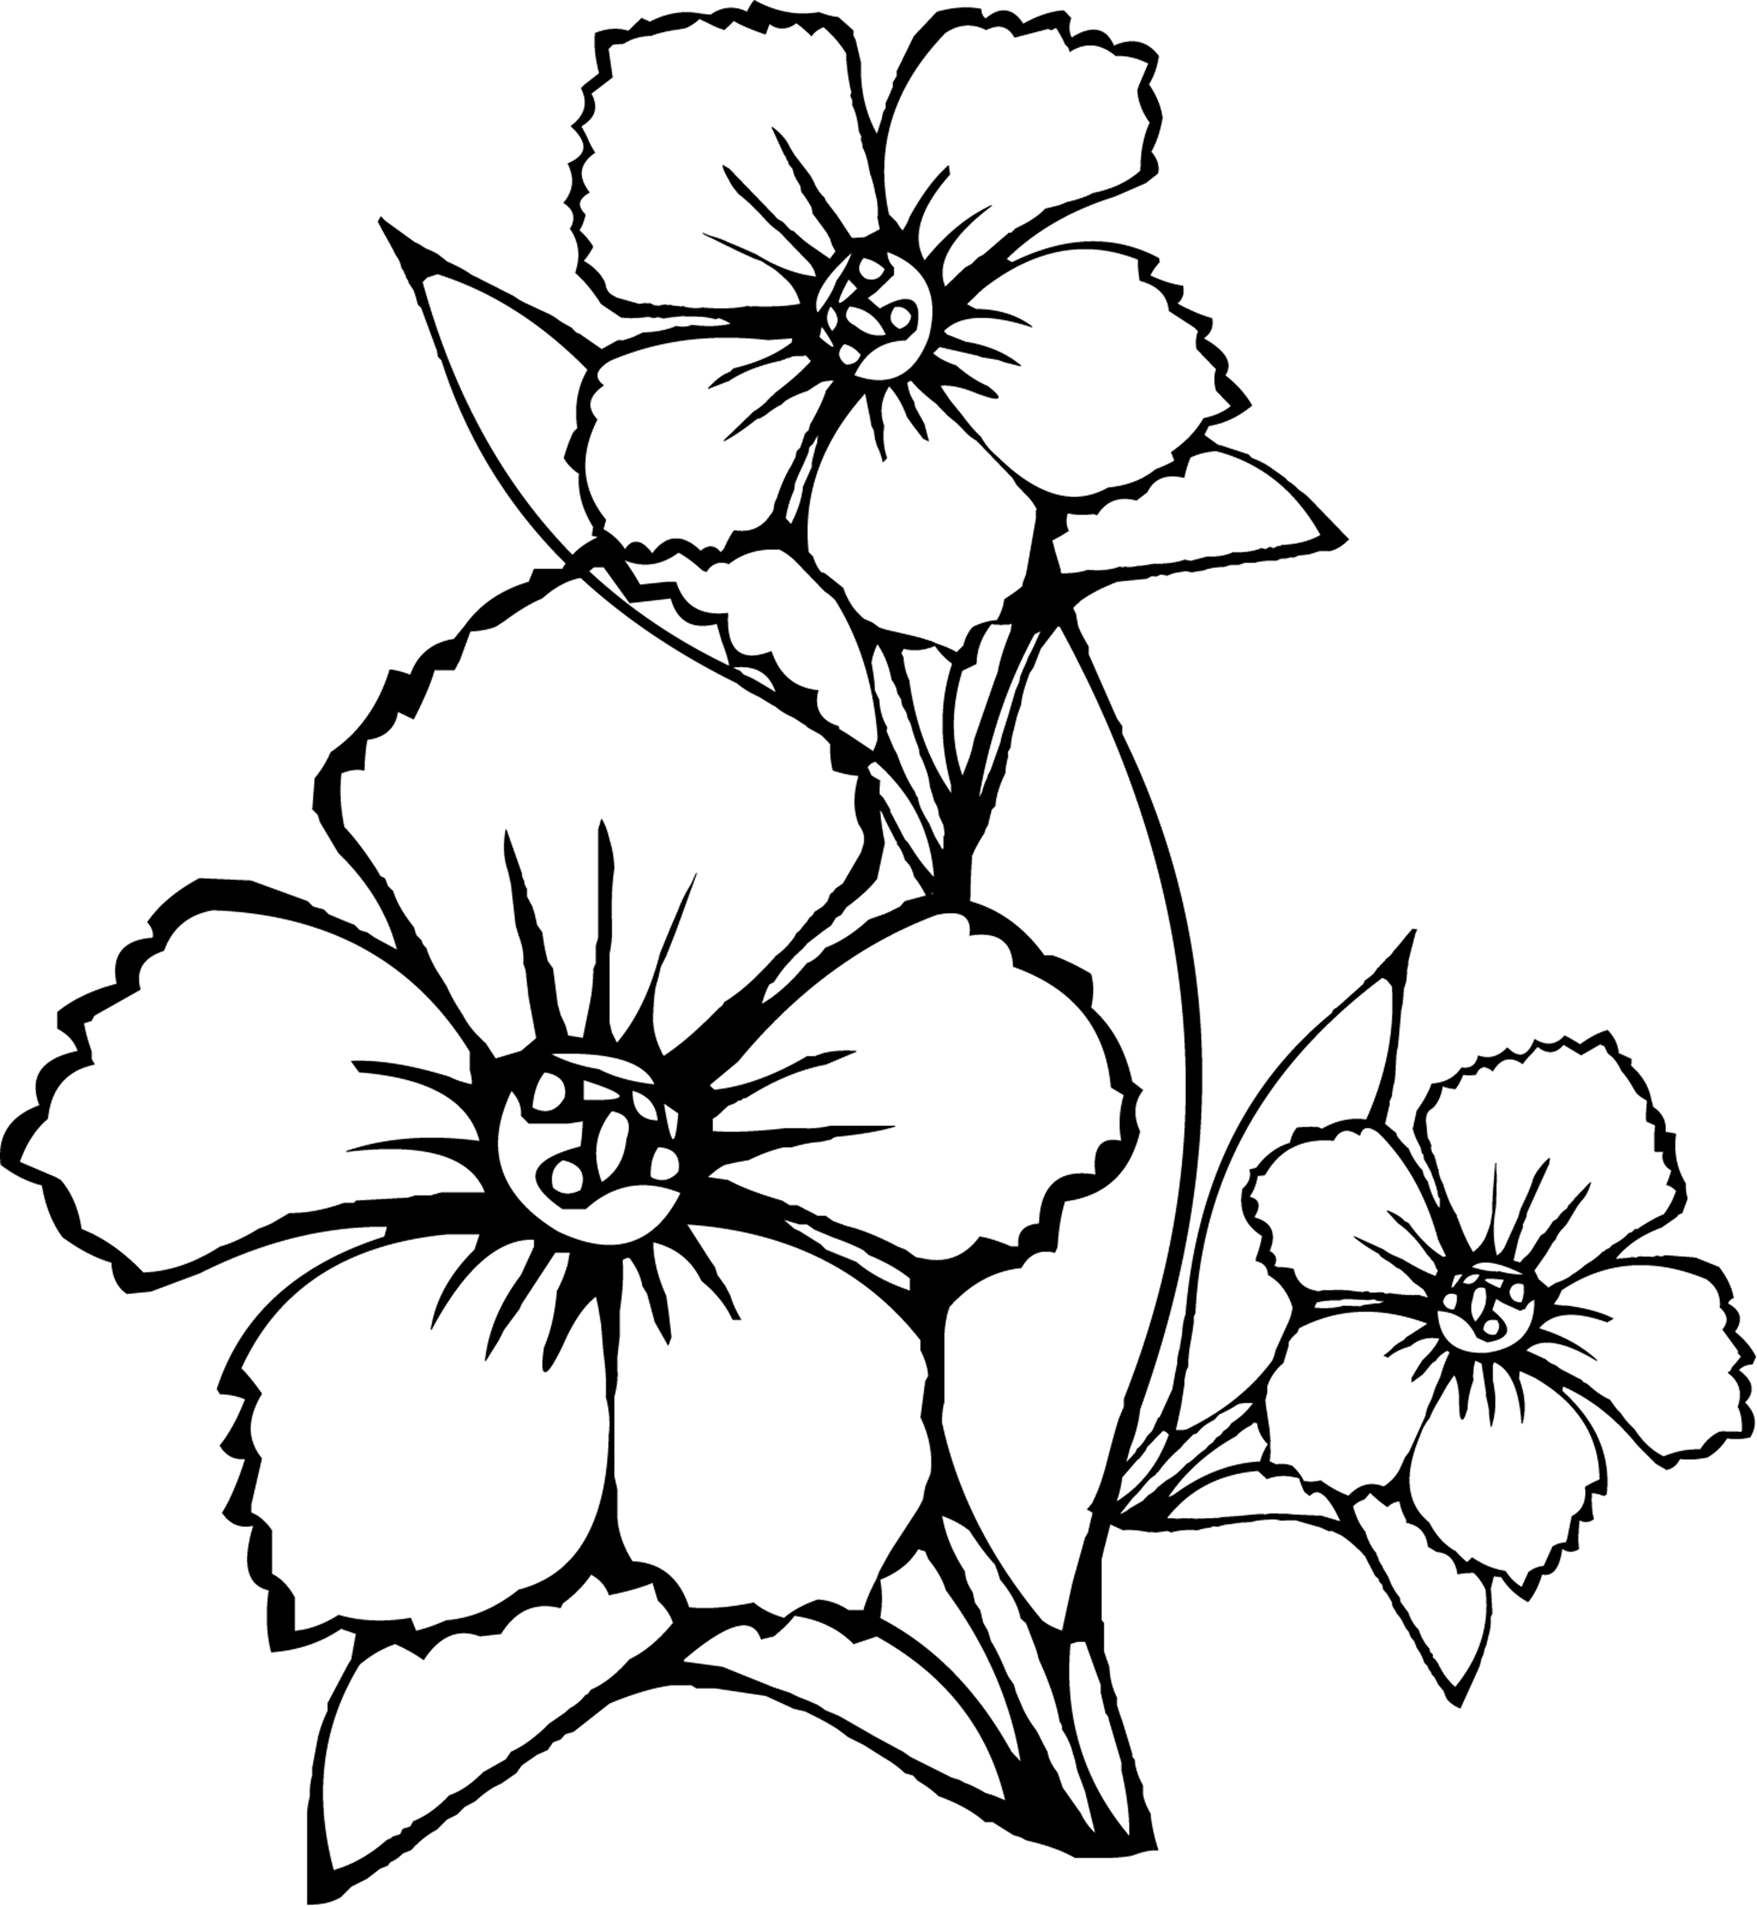 coloring pictures of a flower free printable flower coloring pages for kids best a flower pictures coloring of